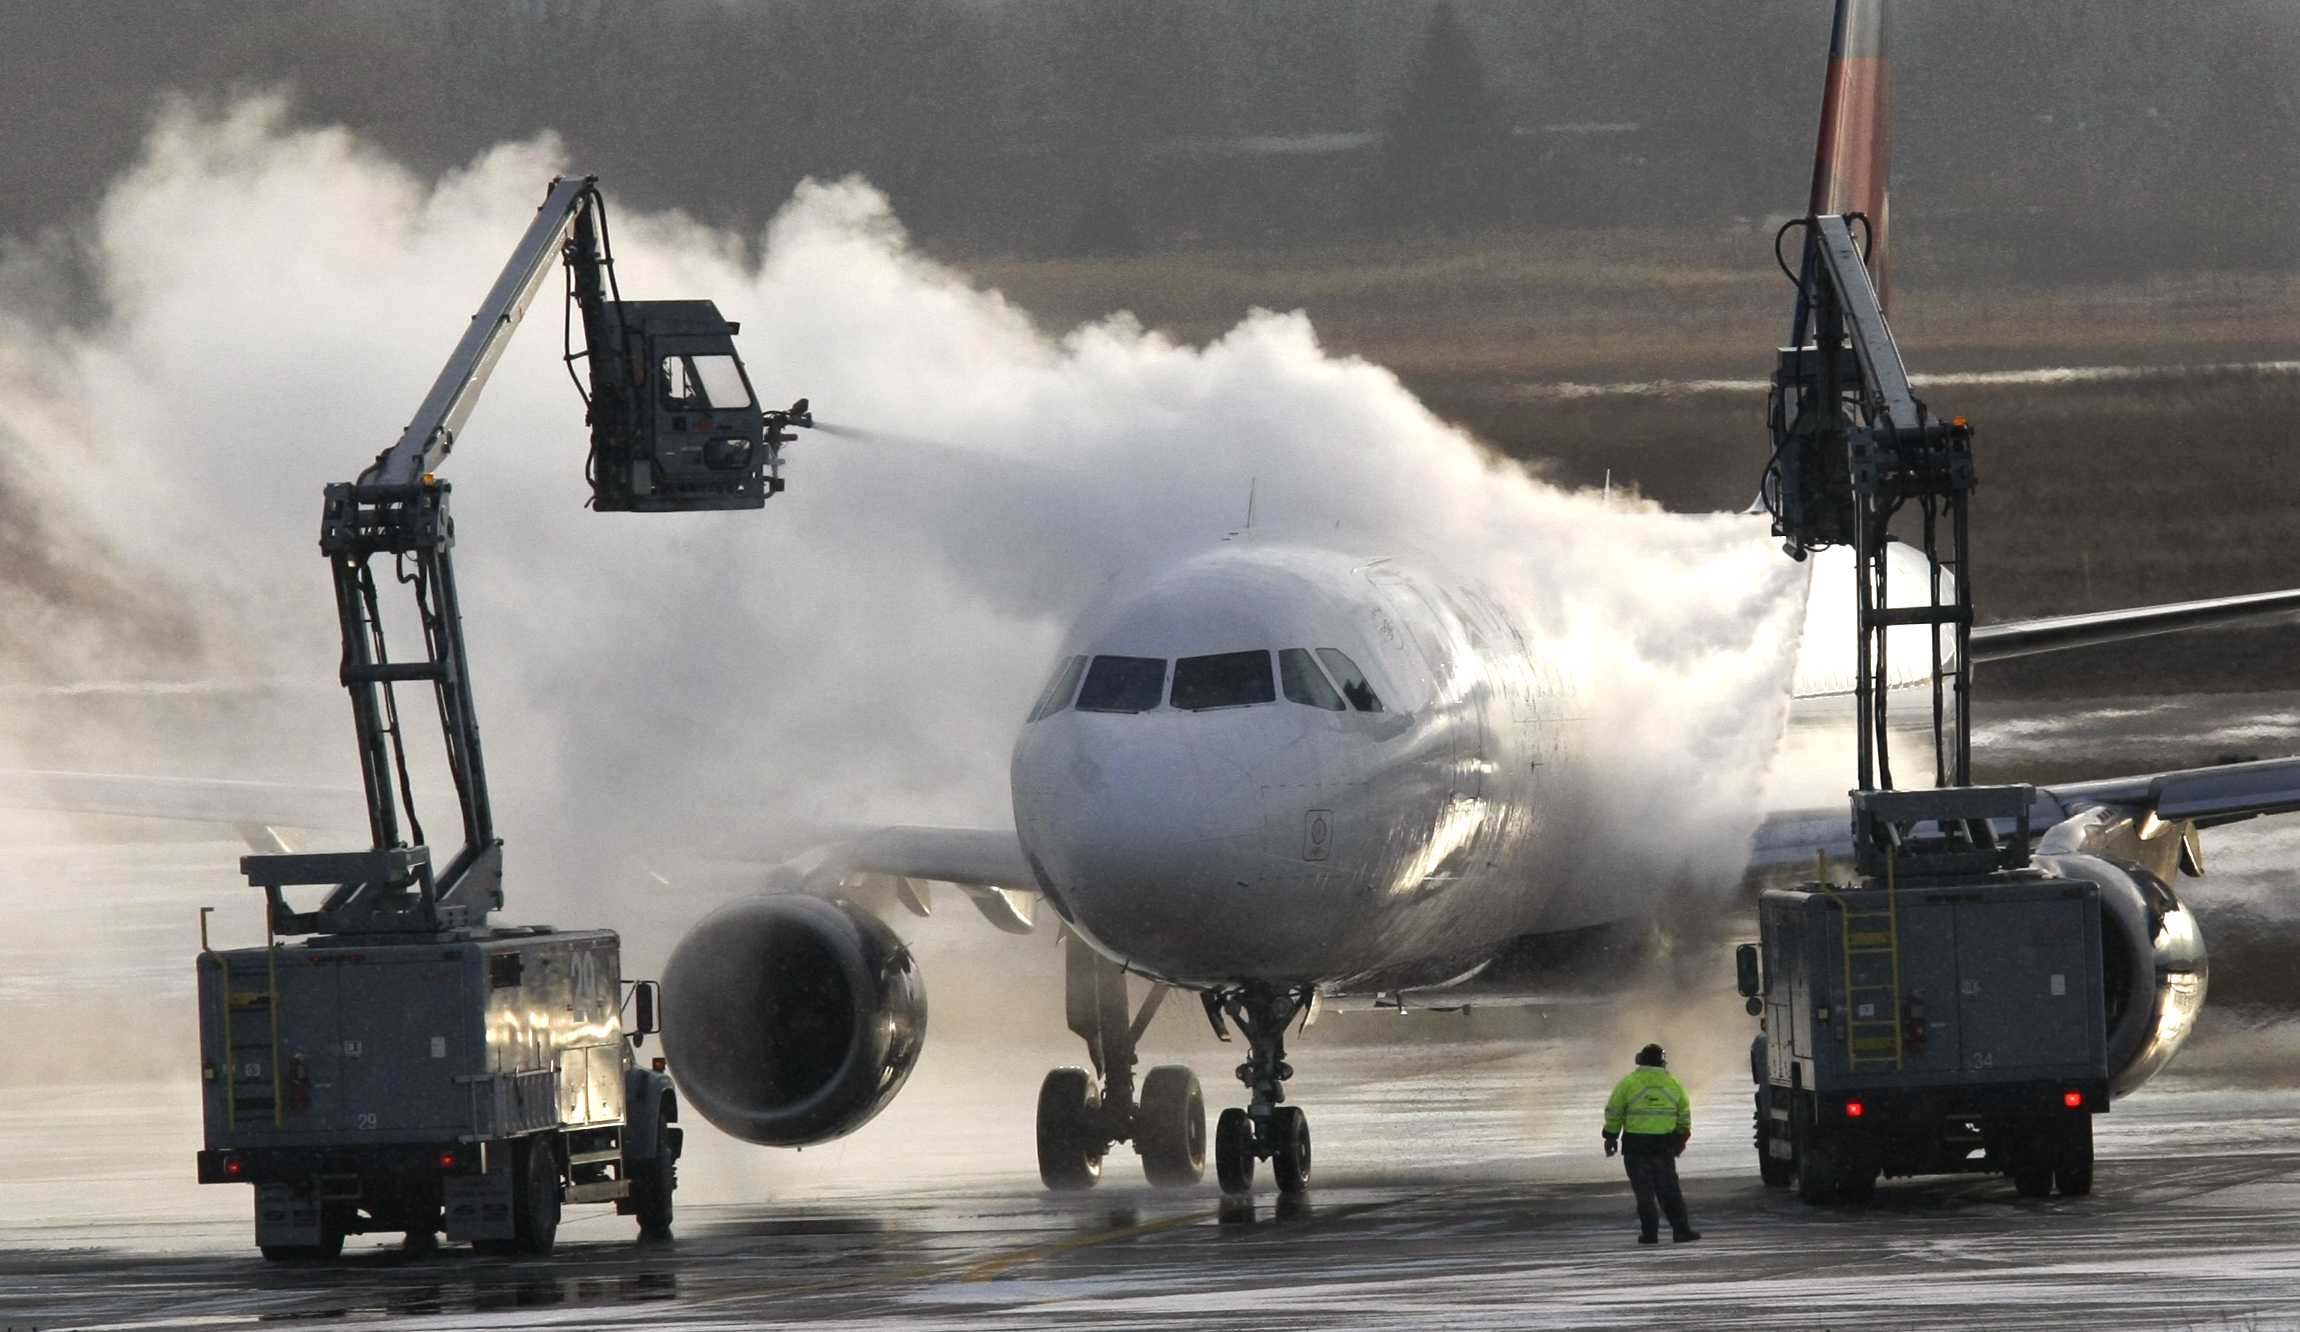 A Delta Airlines plane is deiced at the Detroit Metropolitan Airport in Romulus, Michigan on Sunday.